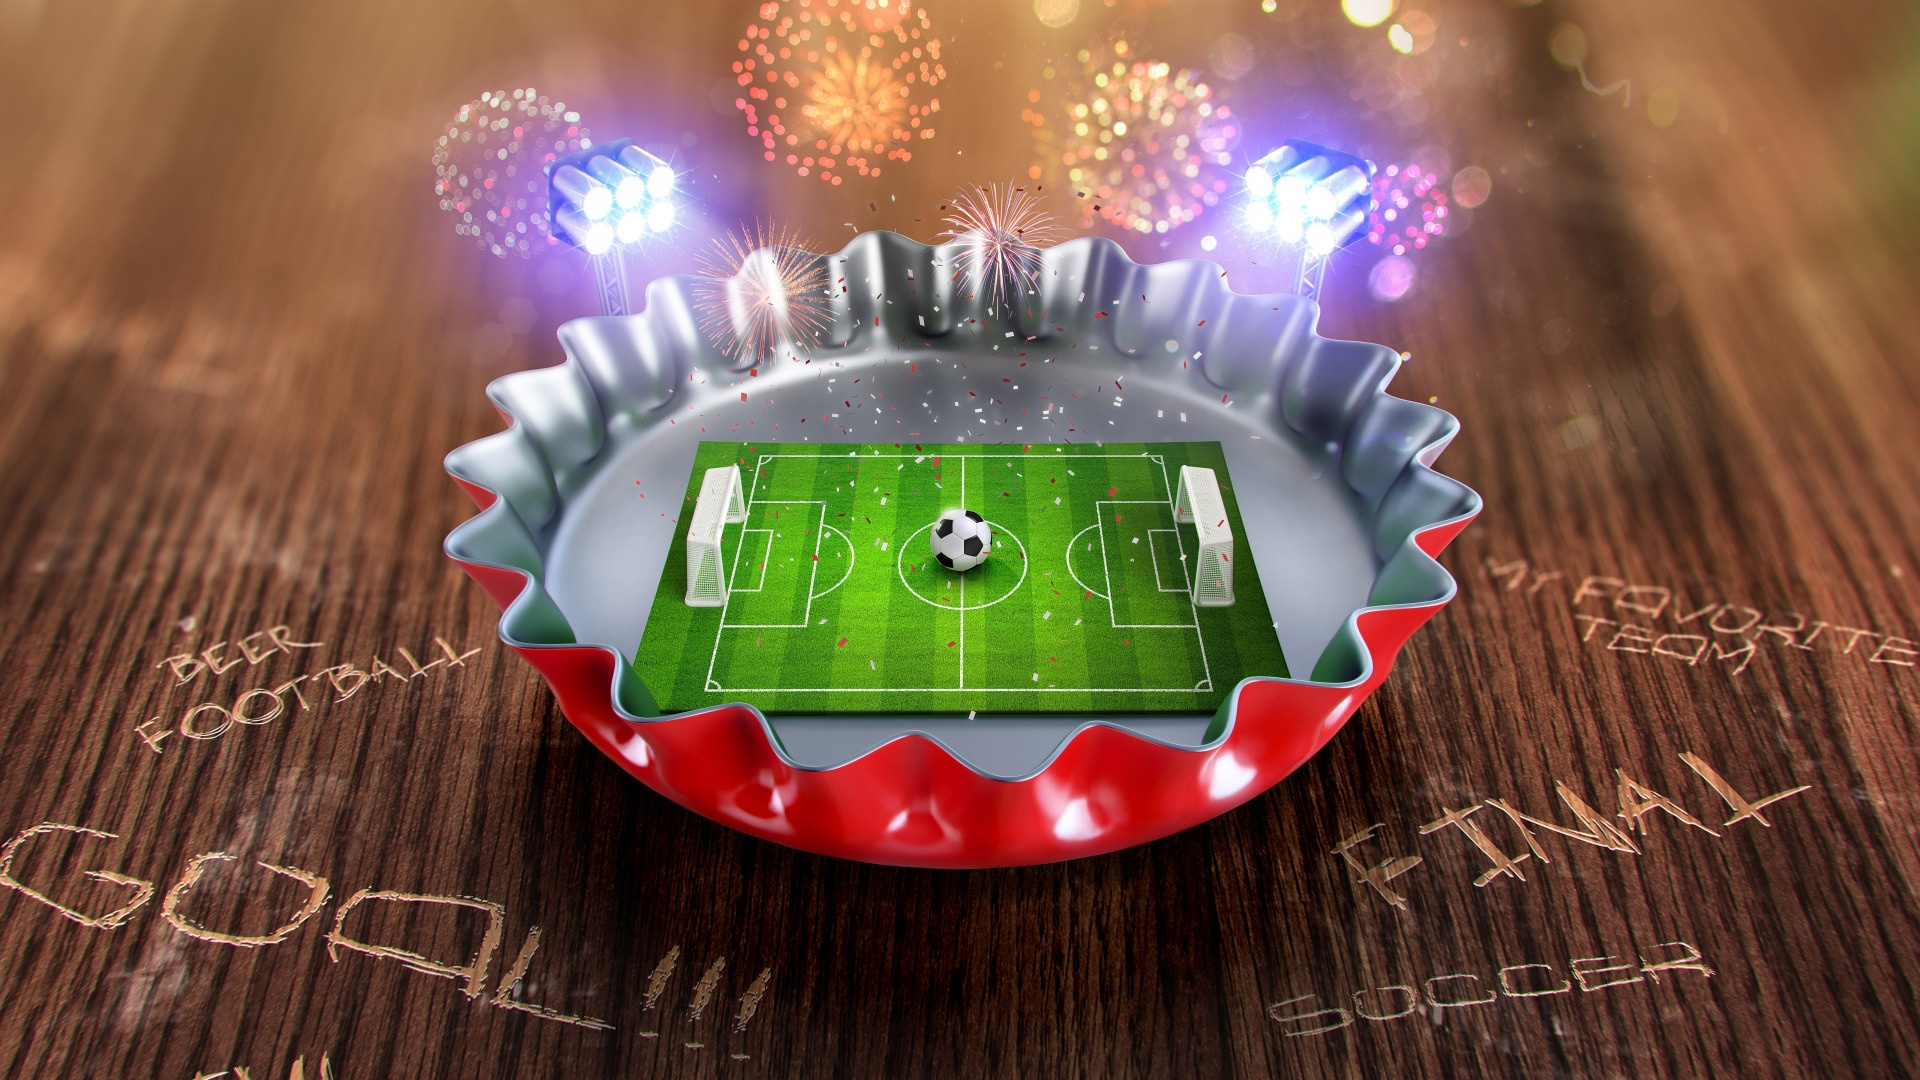 Soccer free background